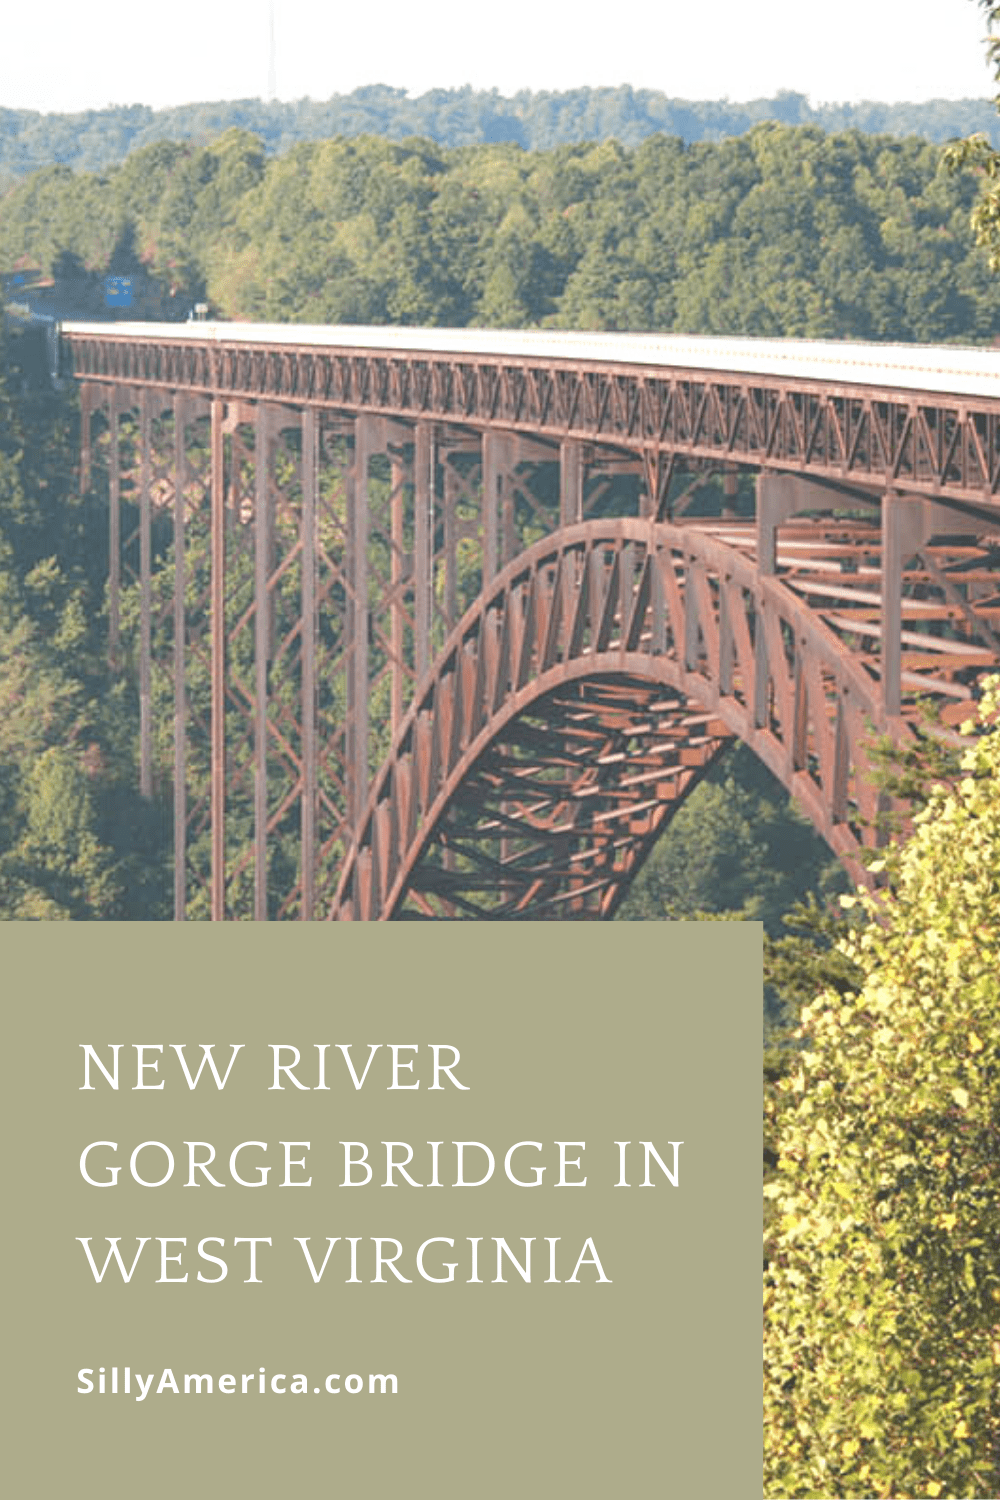 """A must-see tourist attraction in West Virginia is the New River Gorge Bridge. While this road trip stop is far from the normal """"world's largest things"""" we write about here, it's an impressive site and not to be missed if driving through the area. #WestVirginiaRoadsideAttractions #WestVirginiaRoadsideAttraction #RoadsideAttractions #RoadsideAttraction #RoadTrip #WestVirginiaRoadTrip #WestVirginiaTravelRoadTrip #ThingsToDoInWestVirginia #WestVirginiaMountainsRoadTrip"""